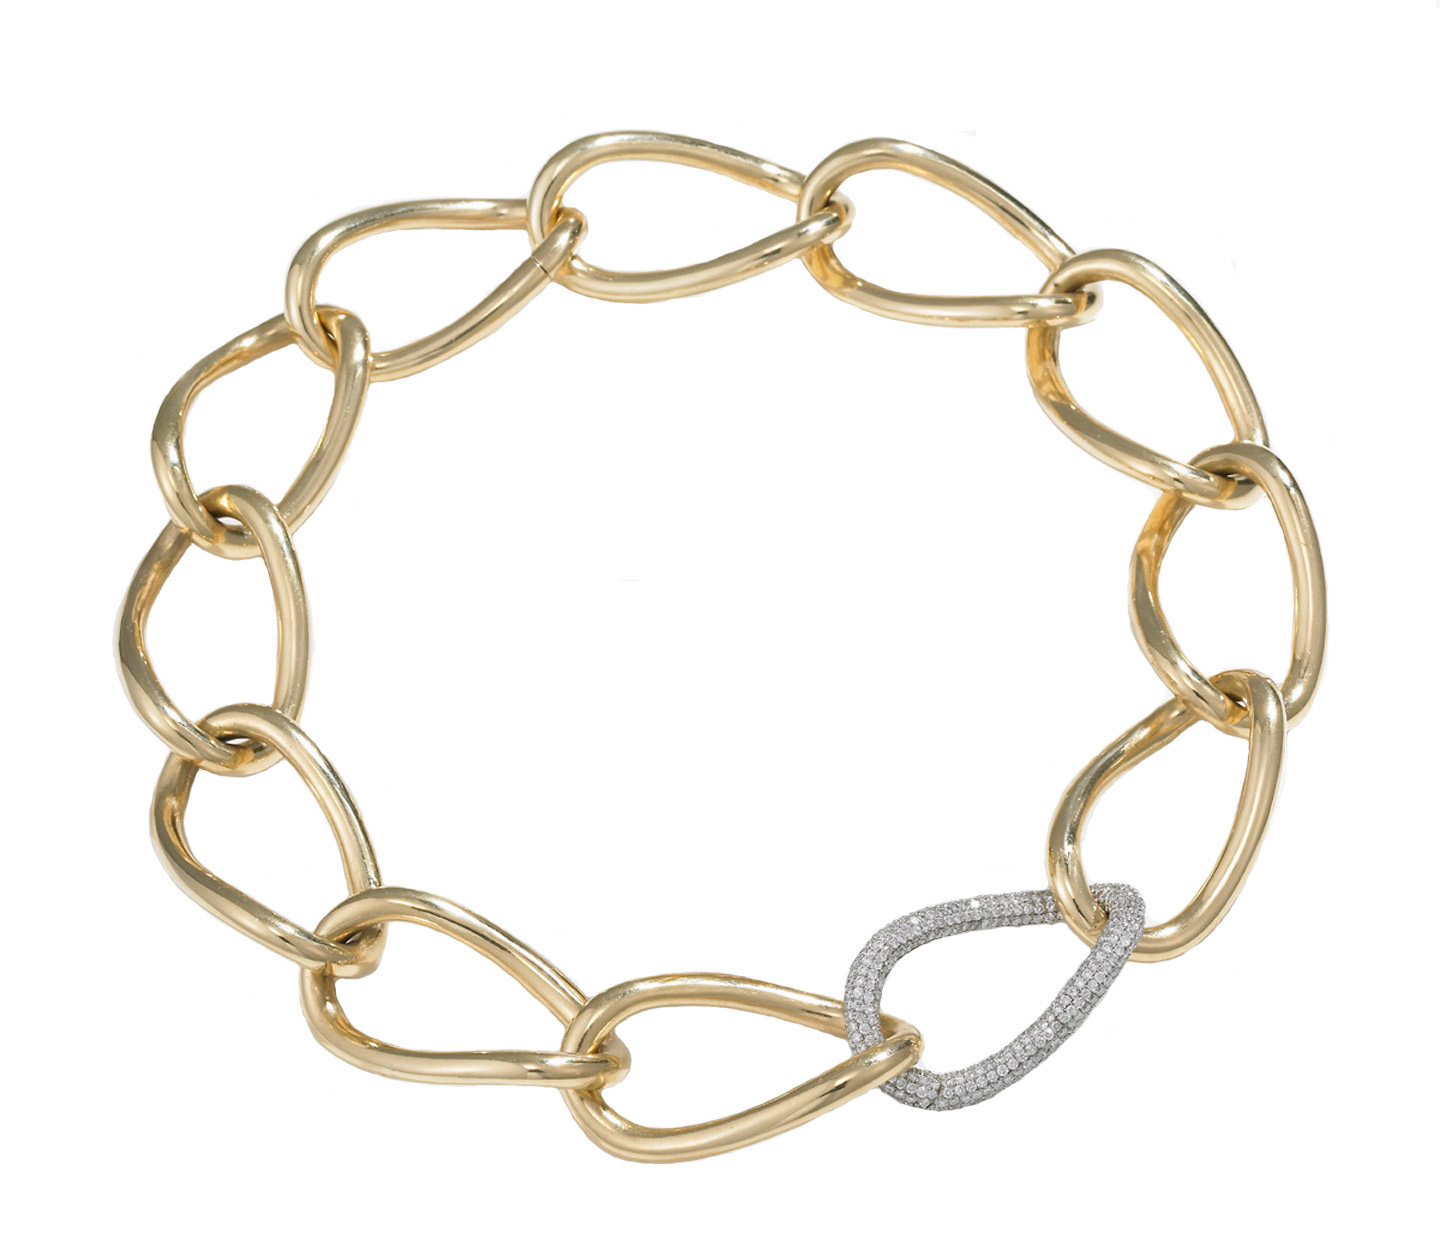 """A pair of the 18KT yellow gold """"Posh"""" bracelets from the Meriwether Retro-Redux line can be joined to form the """"Posh"""" necklace. The interchangeable diamond pavé clasp link shown can be purchased separately. From the RETRO REDUX line by Meriwether."""